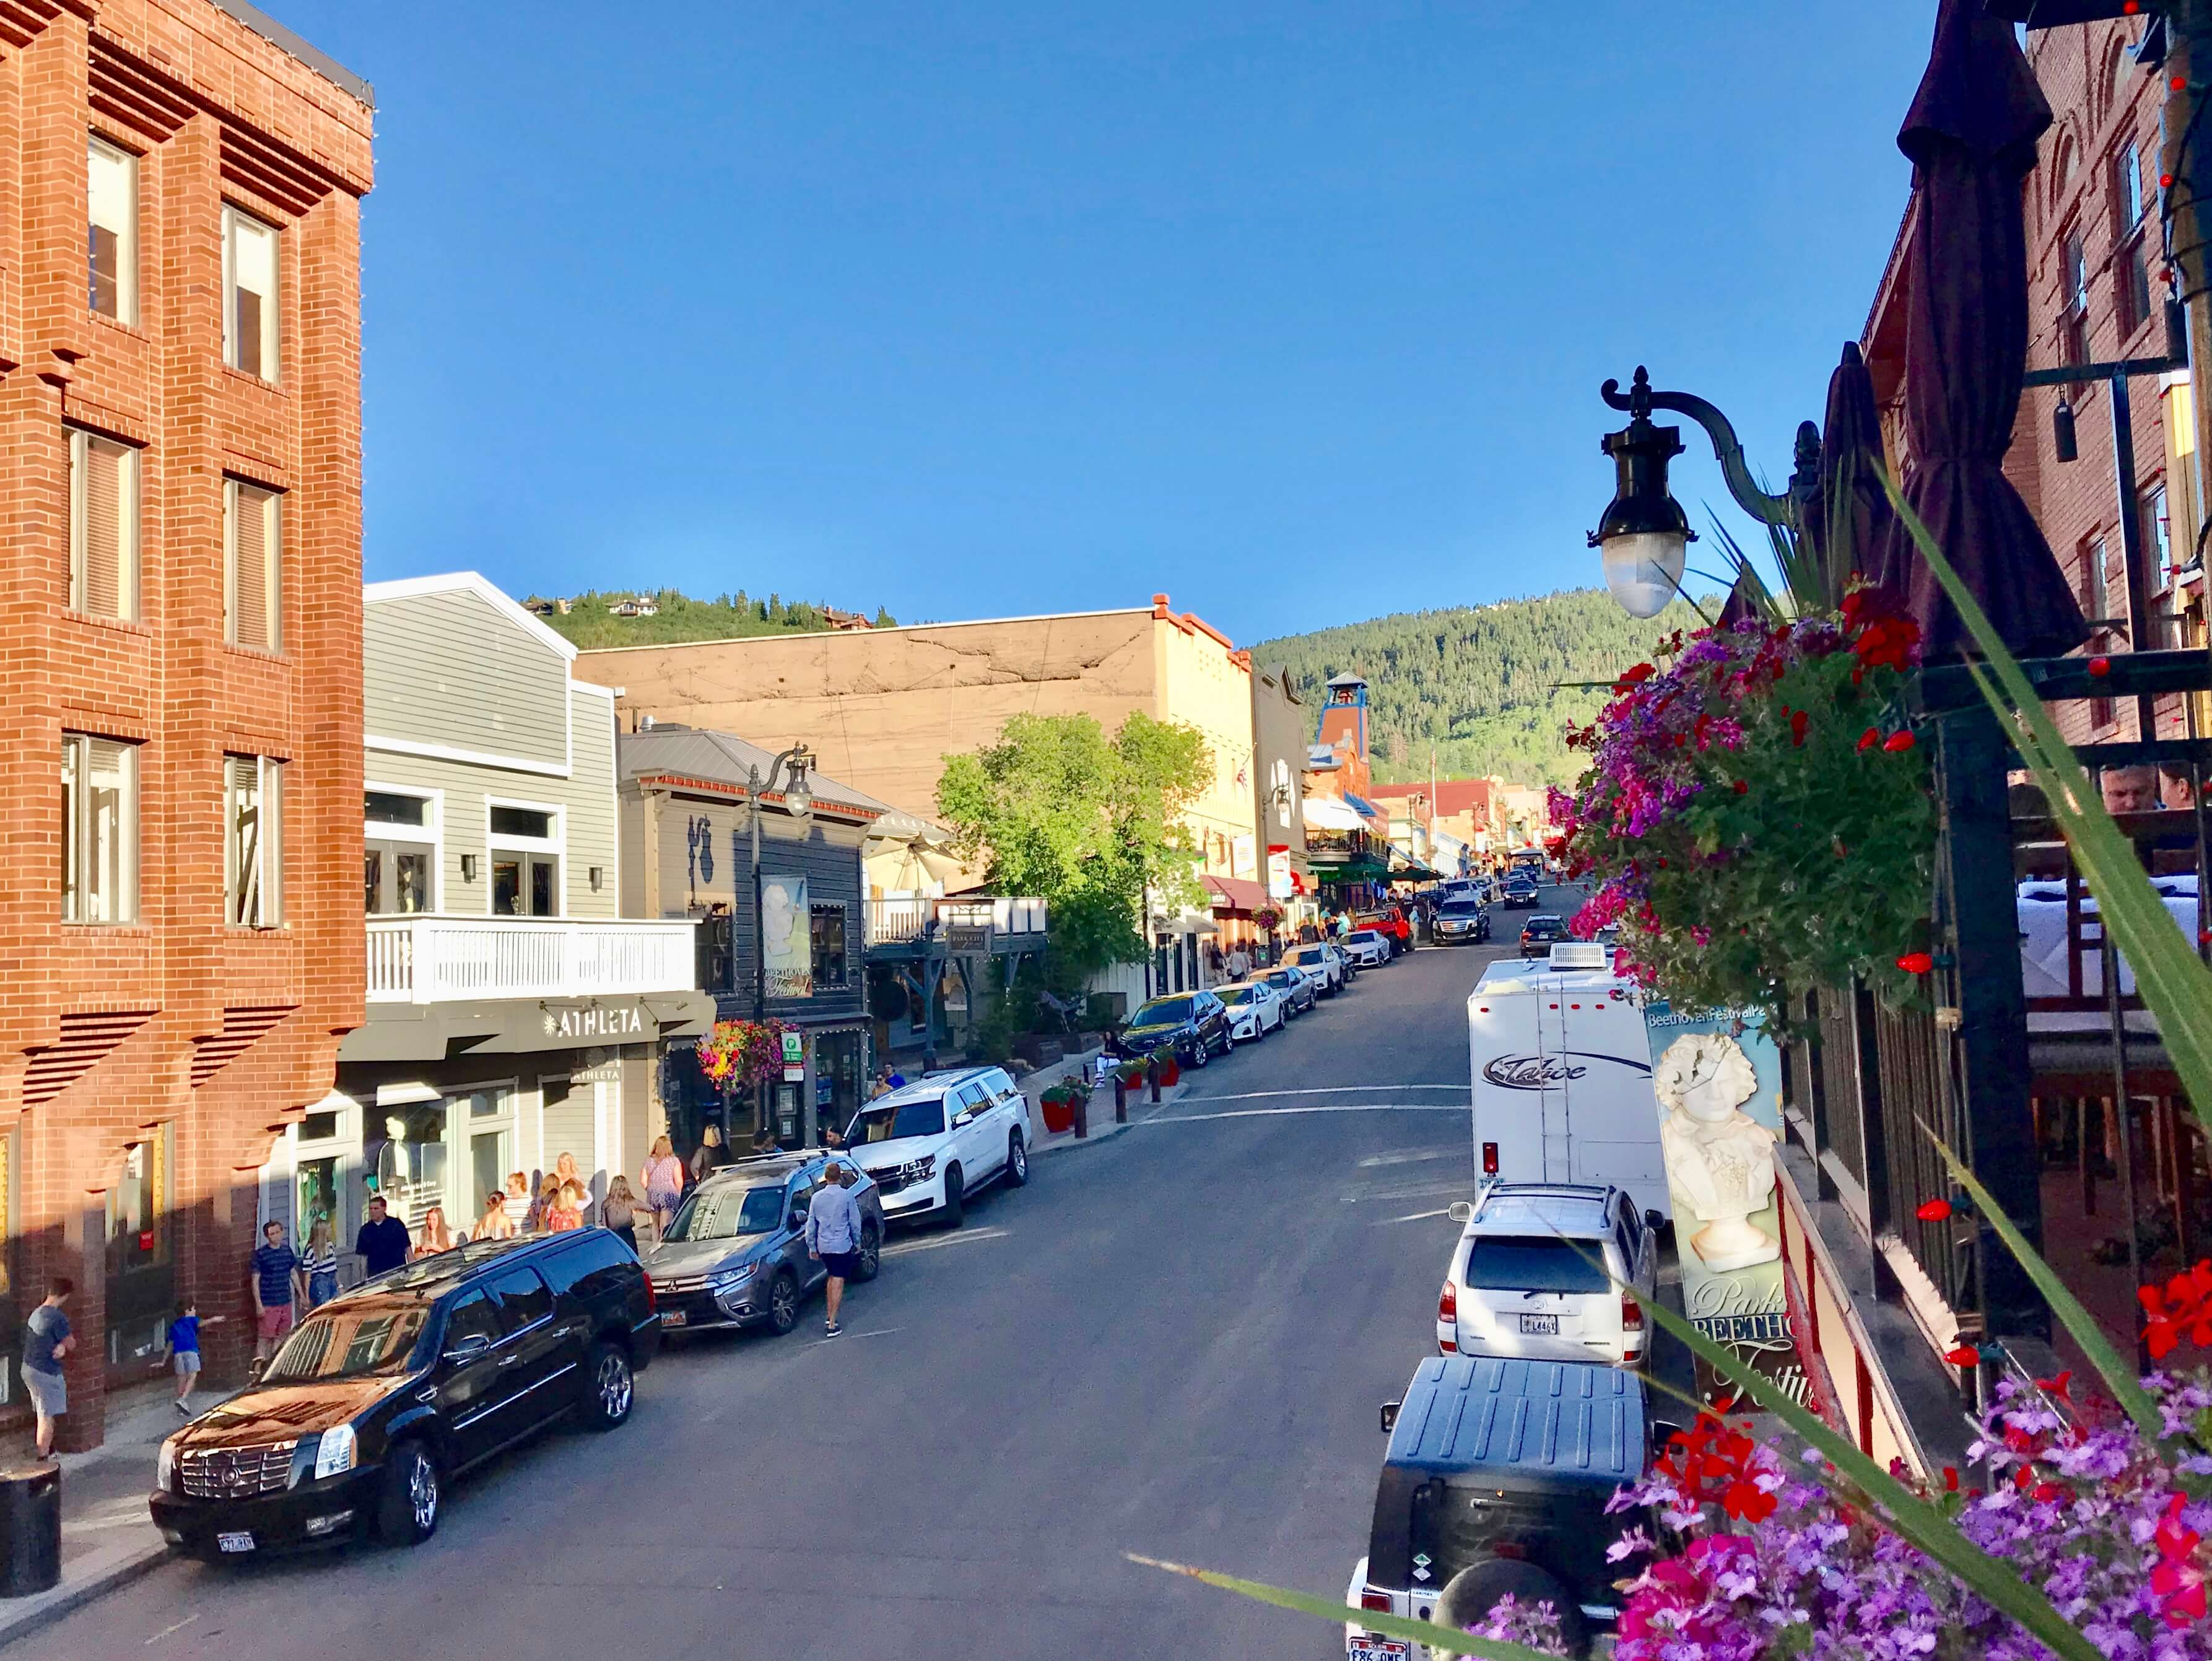 View of Main Street from Wahso Restaurant